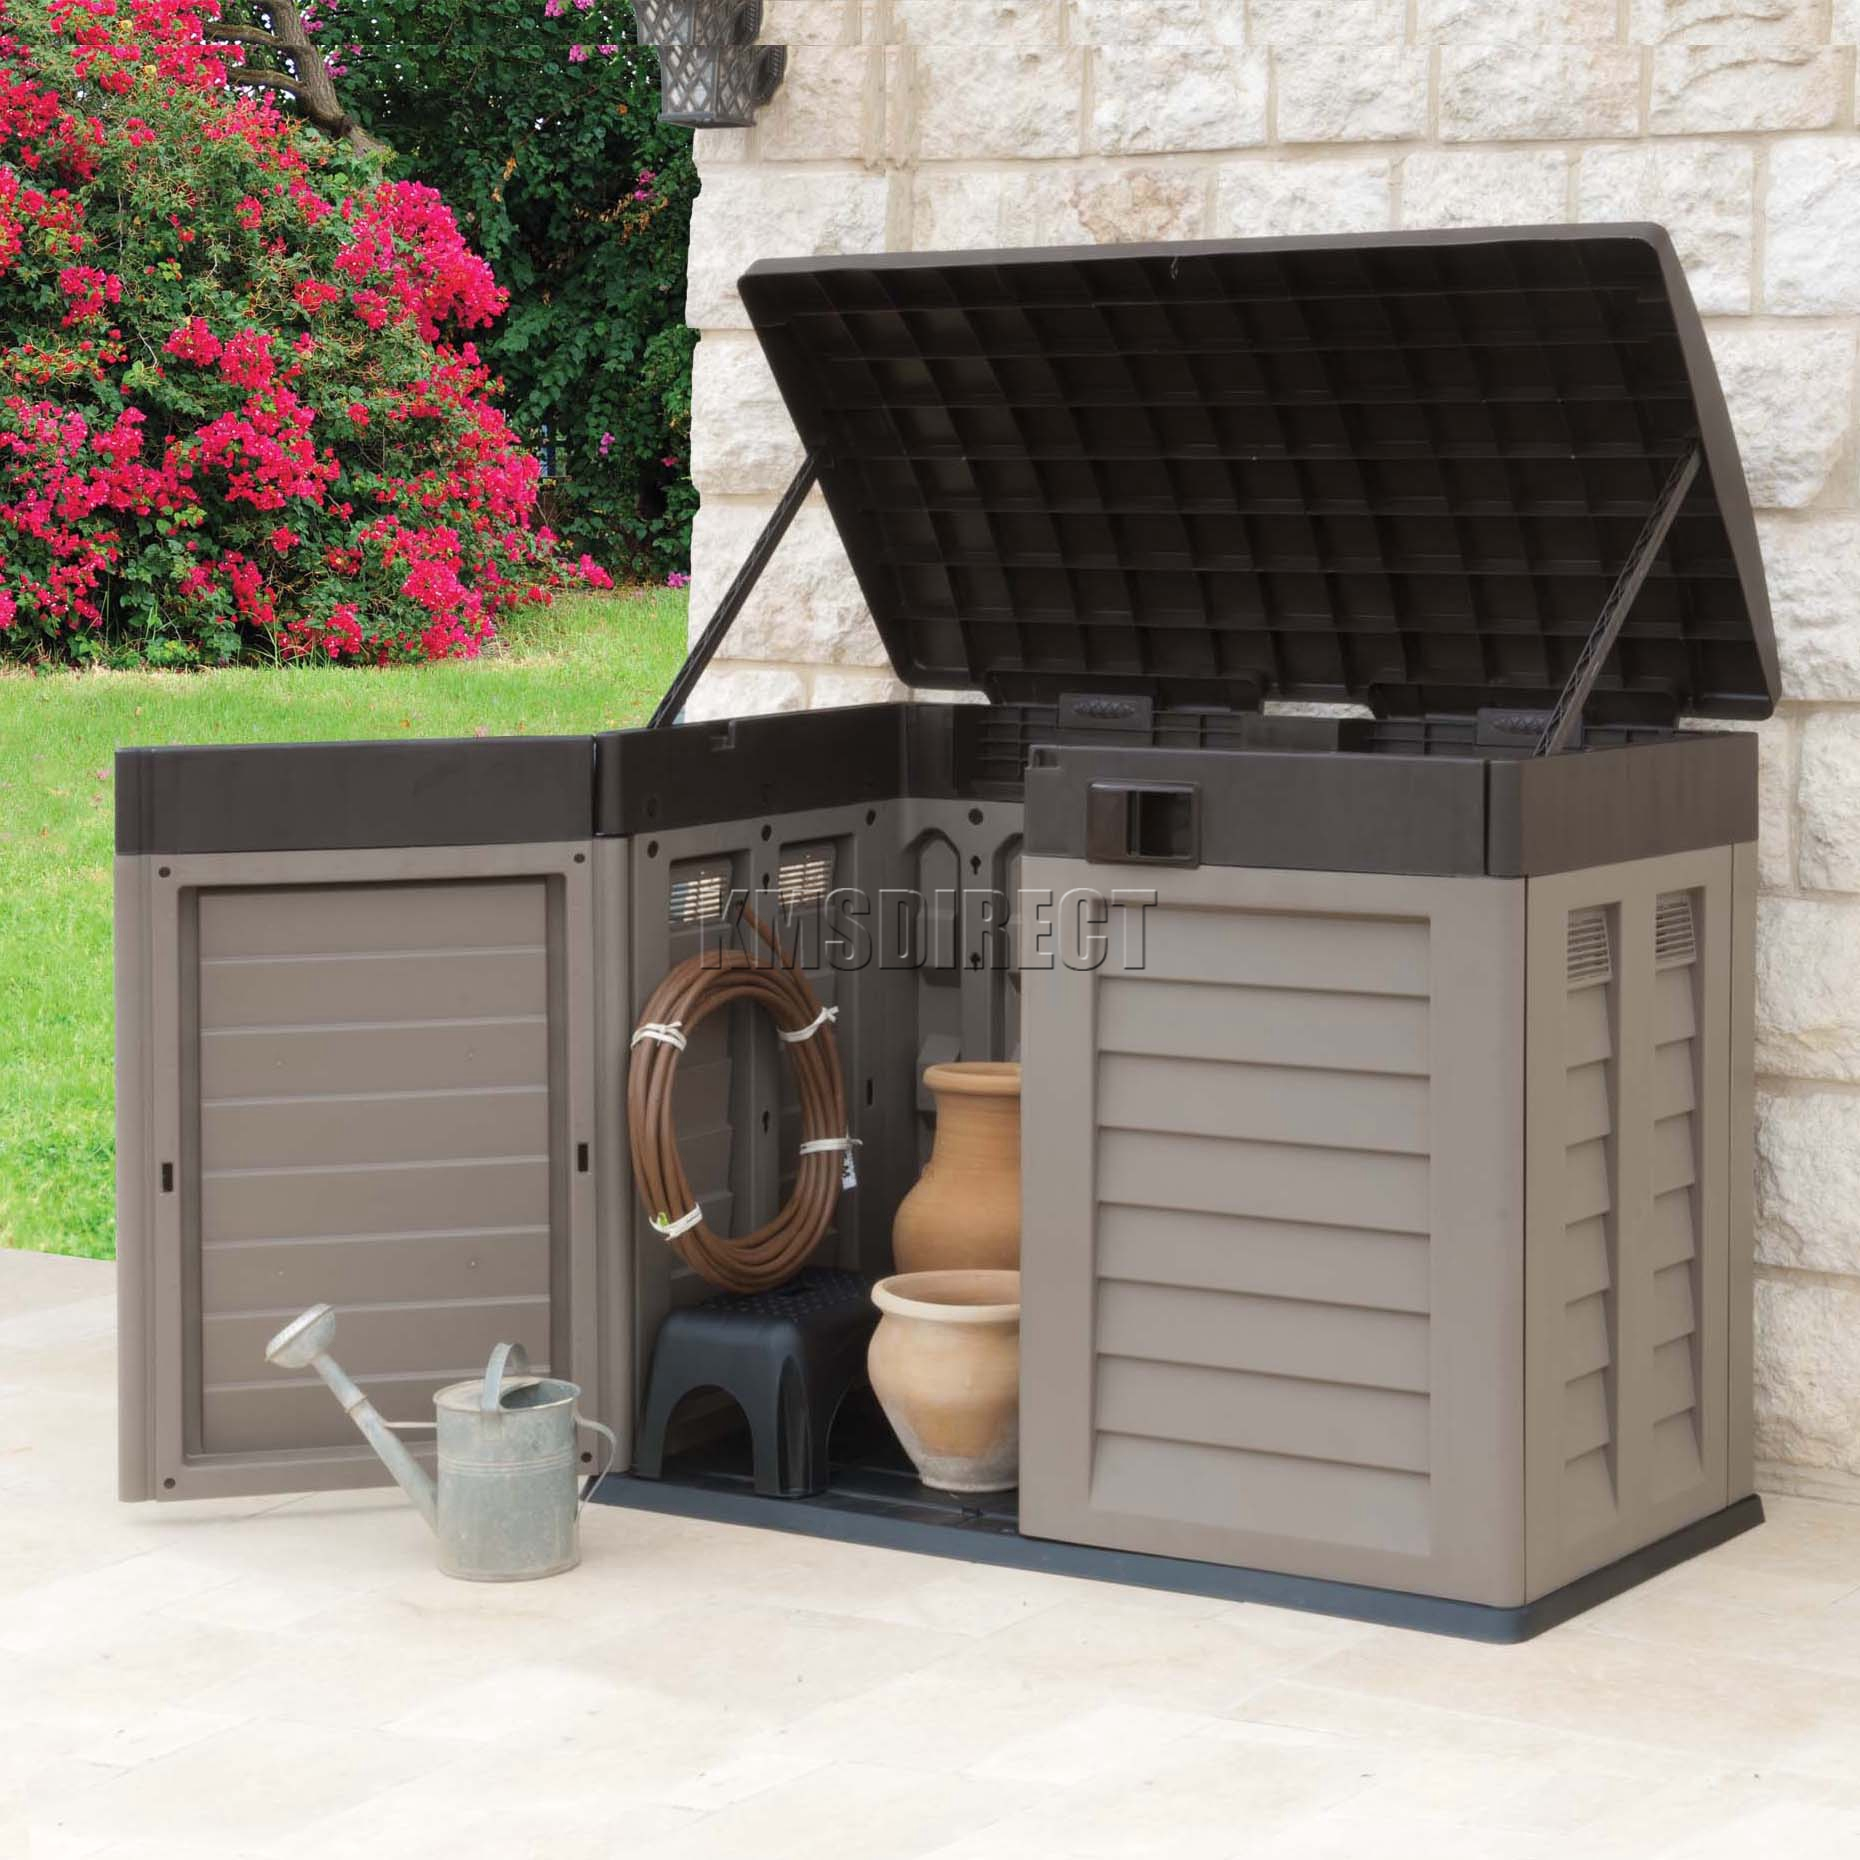 starplast outdoor plastic garden low shed box chest. Black Bedroom Furniture Sets. Home Design Ideas